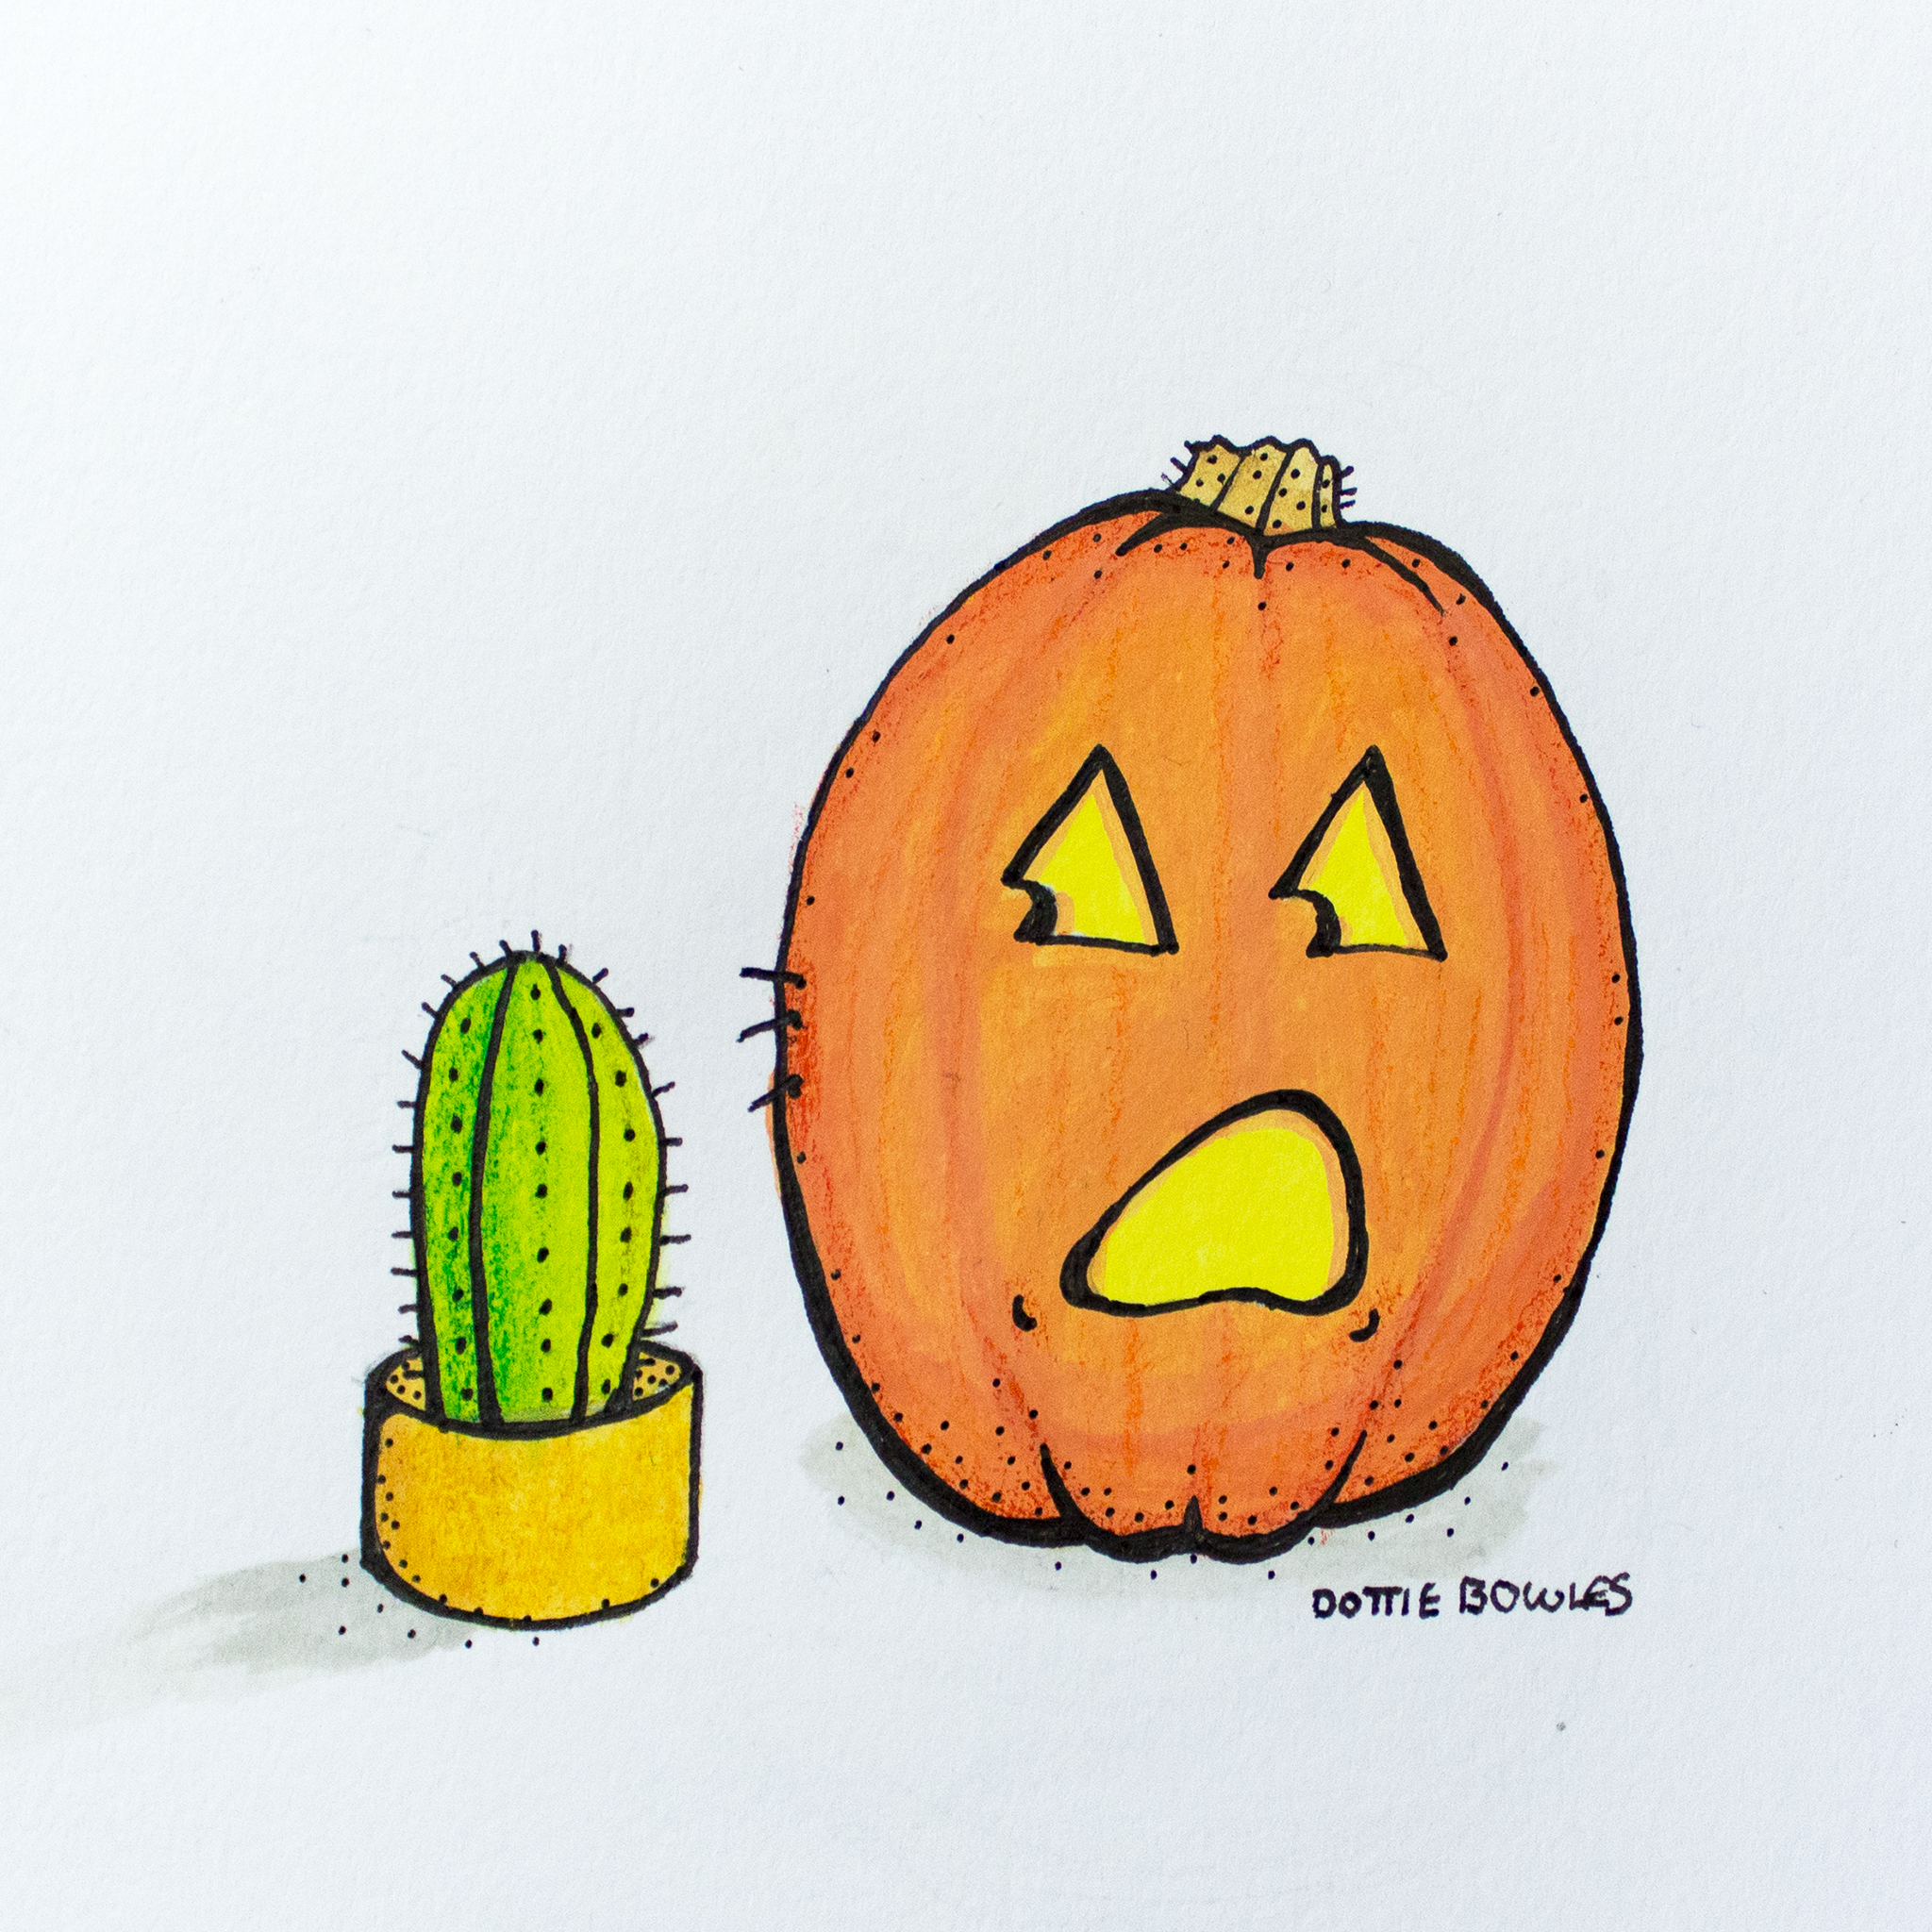 Inktober 2018 Day 25 Prickly by Dottie Bowles